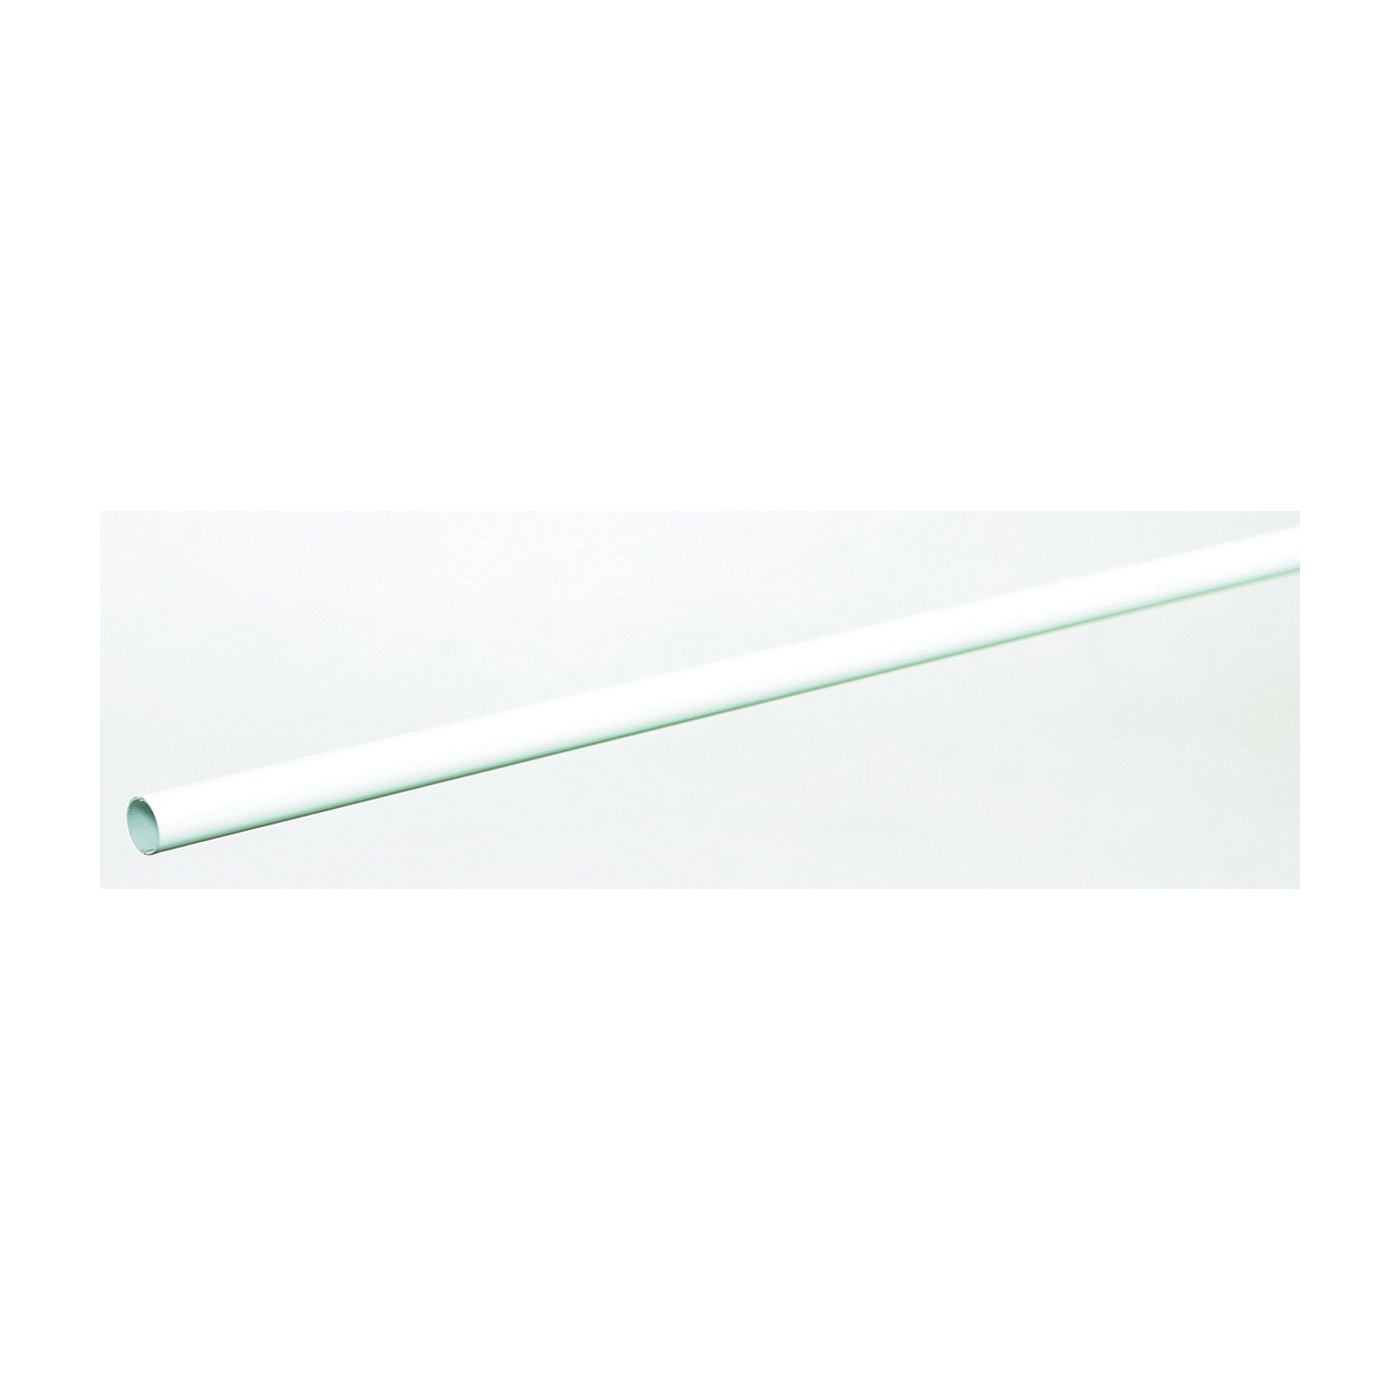 Picture of ClosetMaid 205800 Closet Rod, 30 ft-lb, 5/8 in Dia, 72 in L, Steel, White